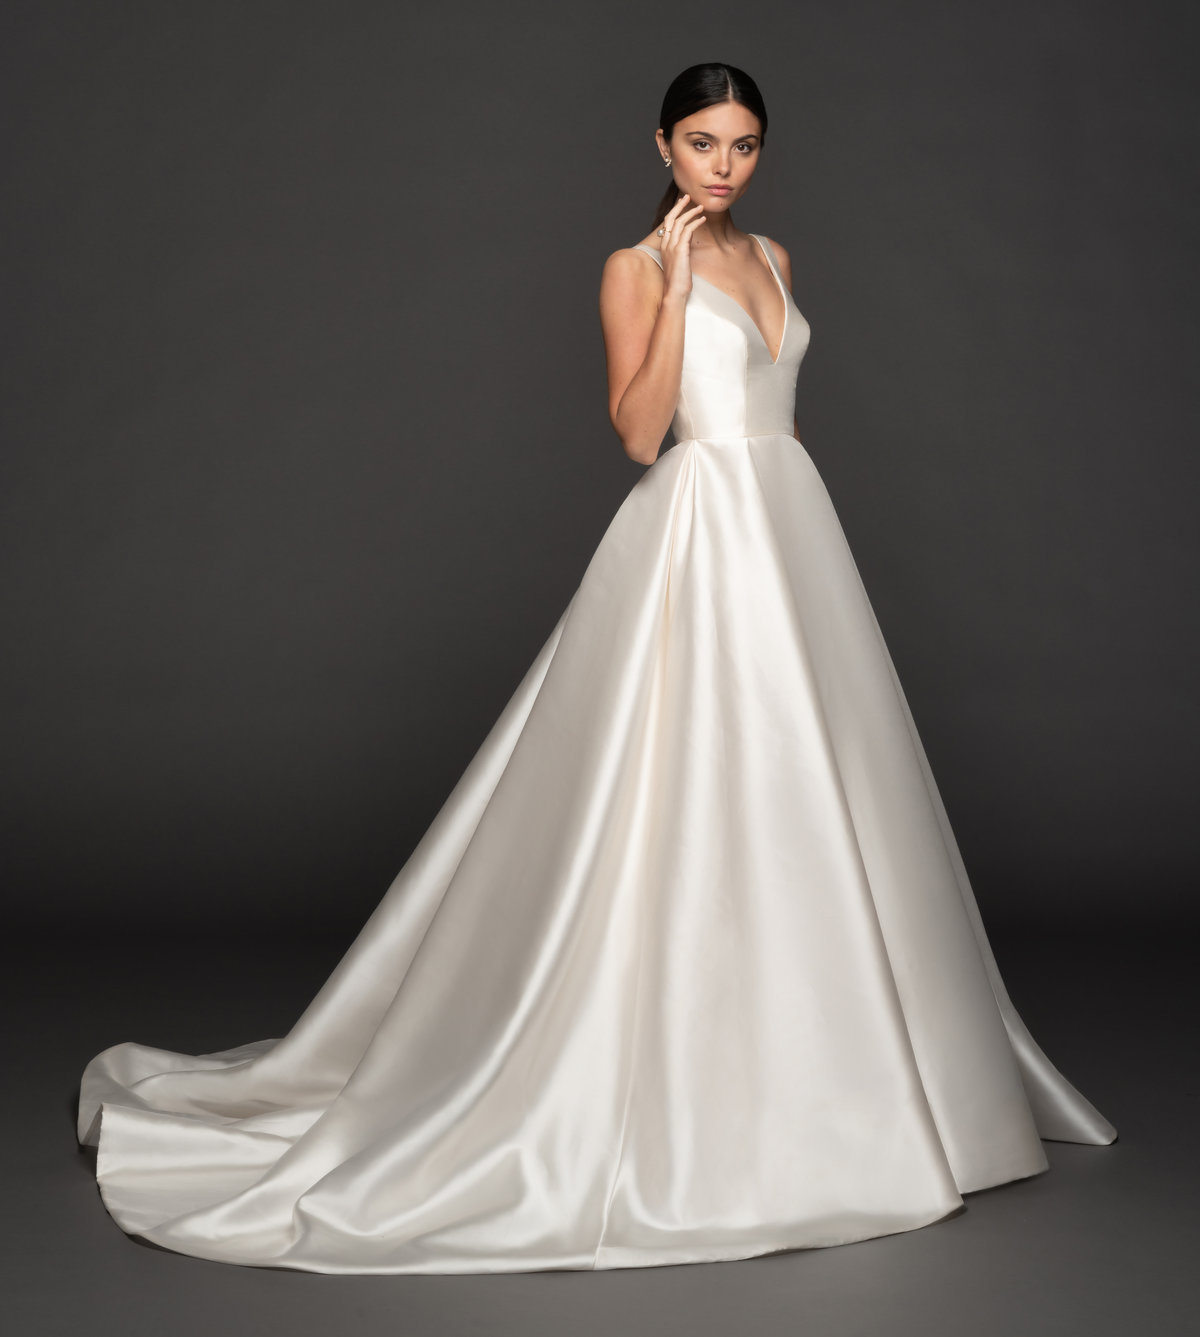 Tara Keely Wedding Gowns: Bridal Gowns And Wedding Dresses By JLM Couture